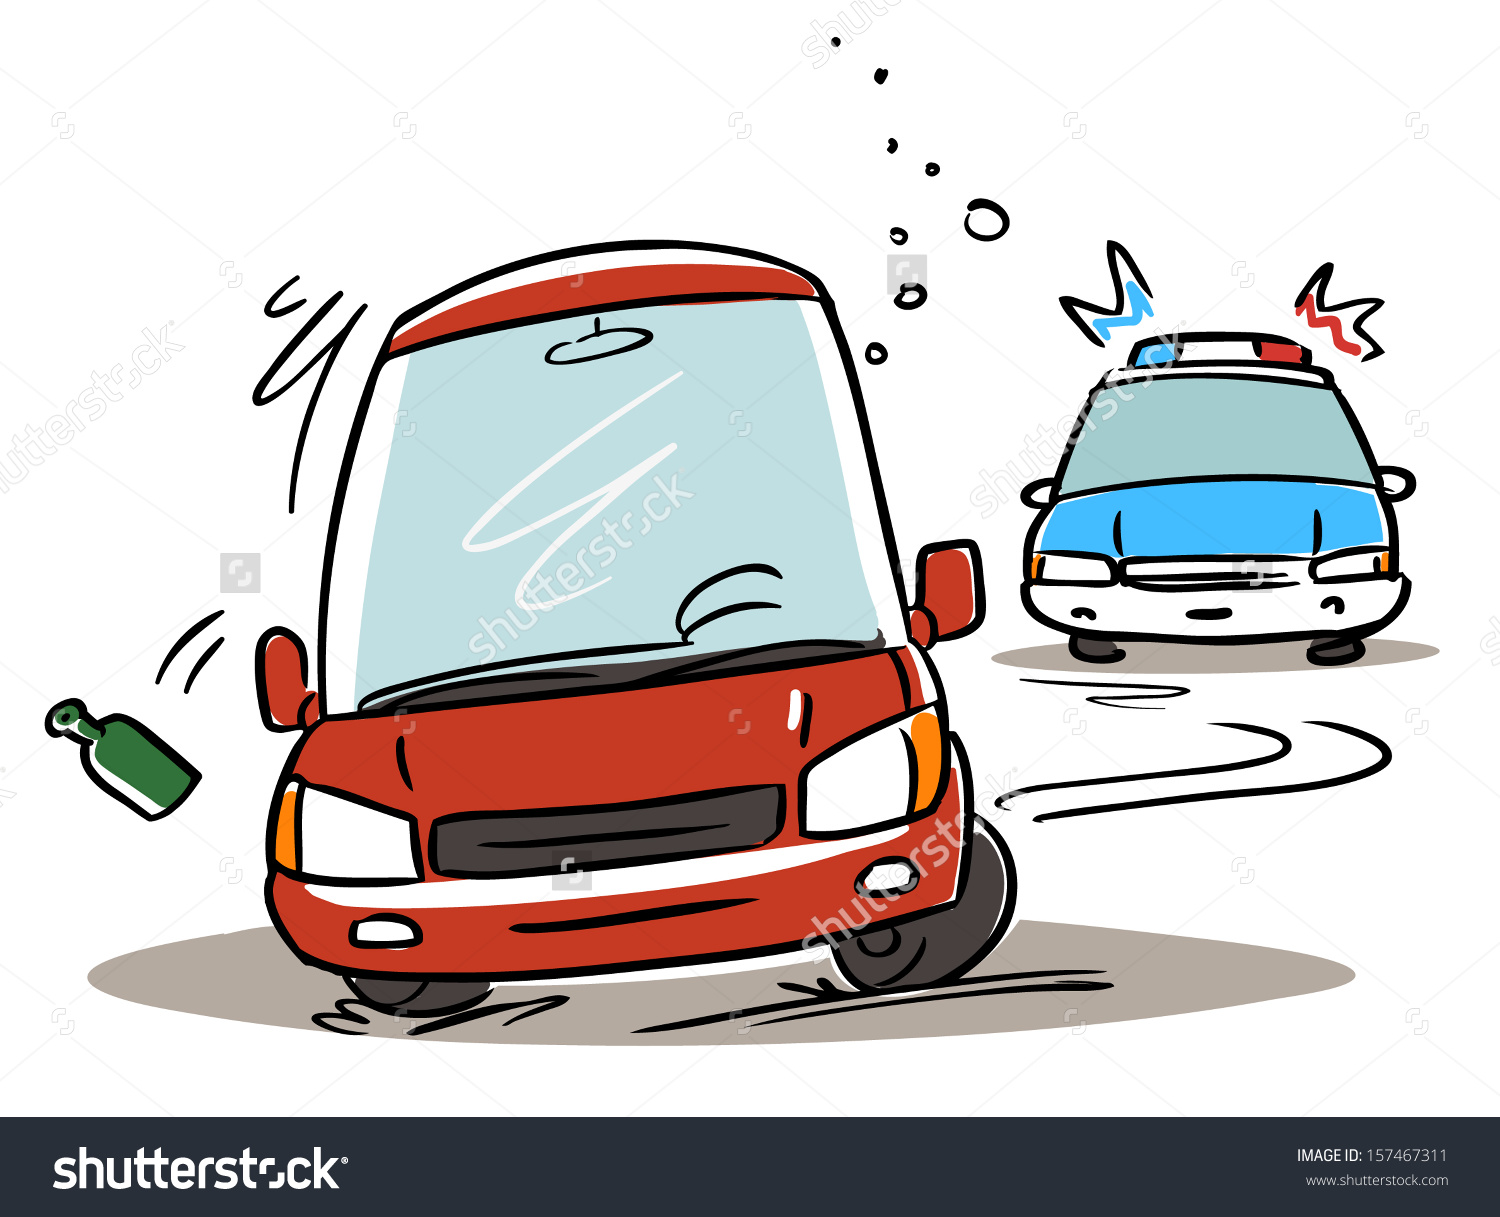 Car chase clipart police svg transparent library Police Chasing Drunk Driver Cartoon Illustration Stock Vector ... svg transparent library